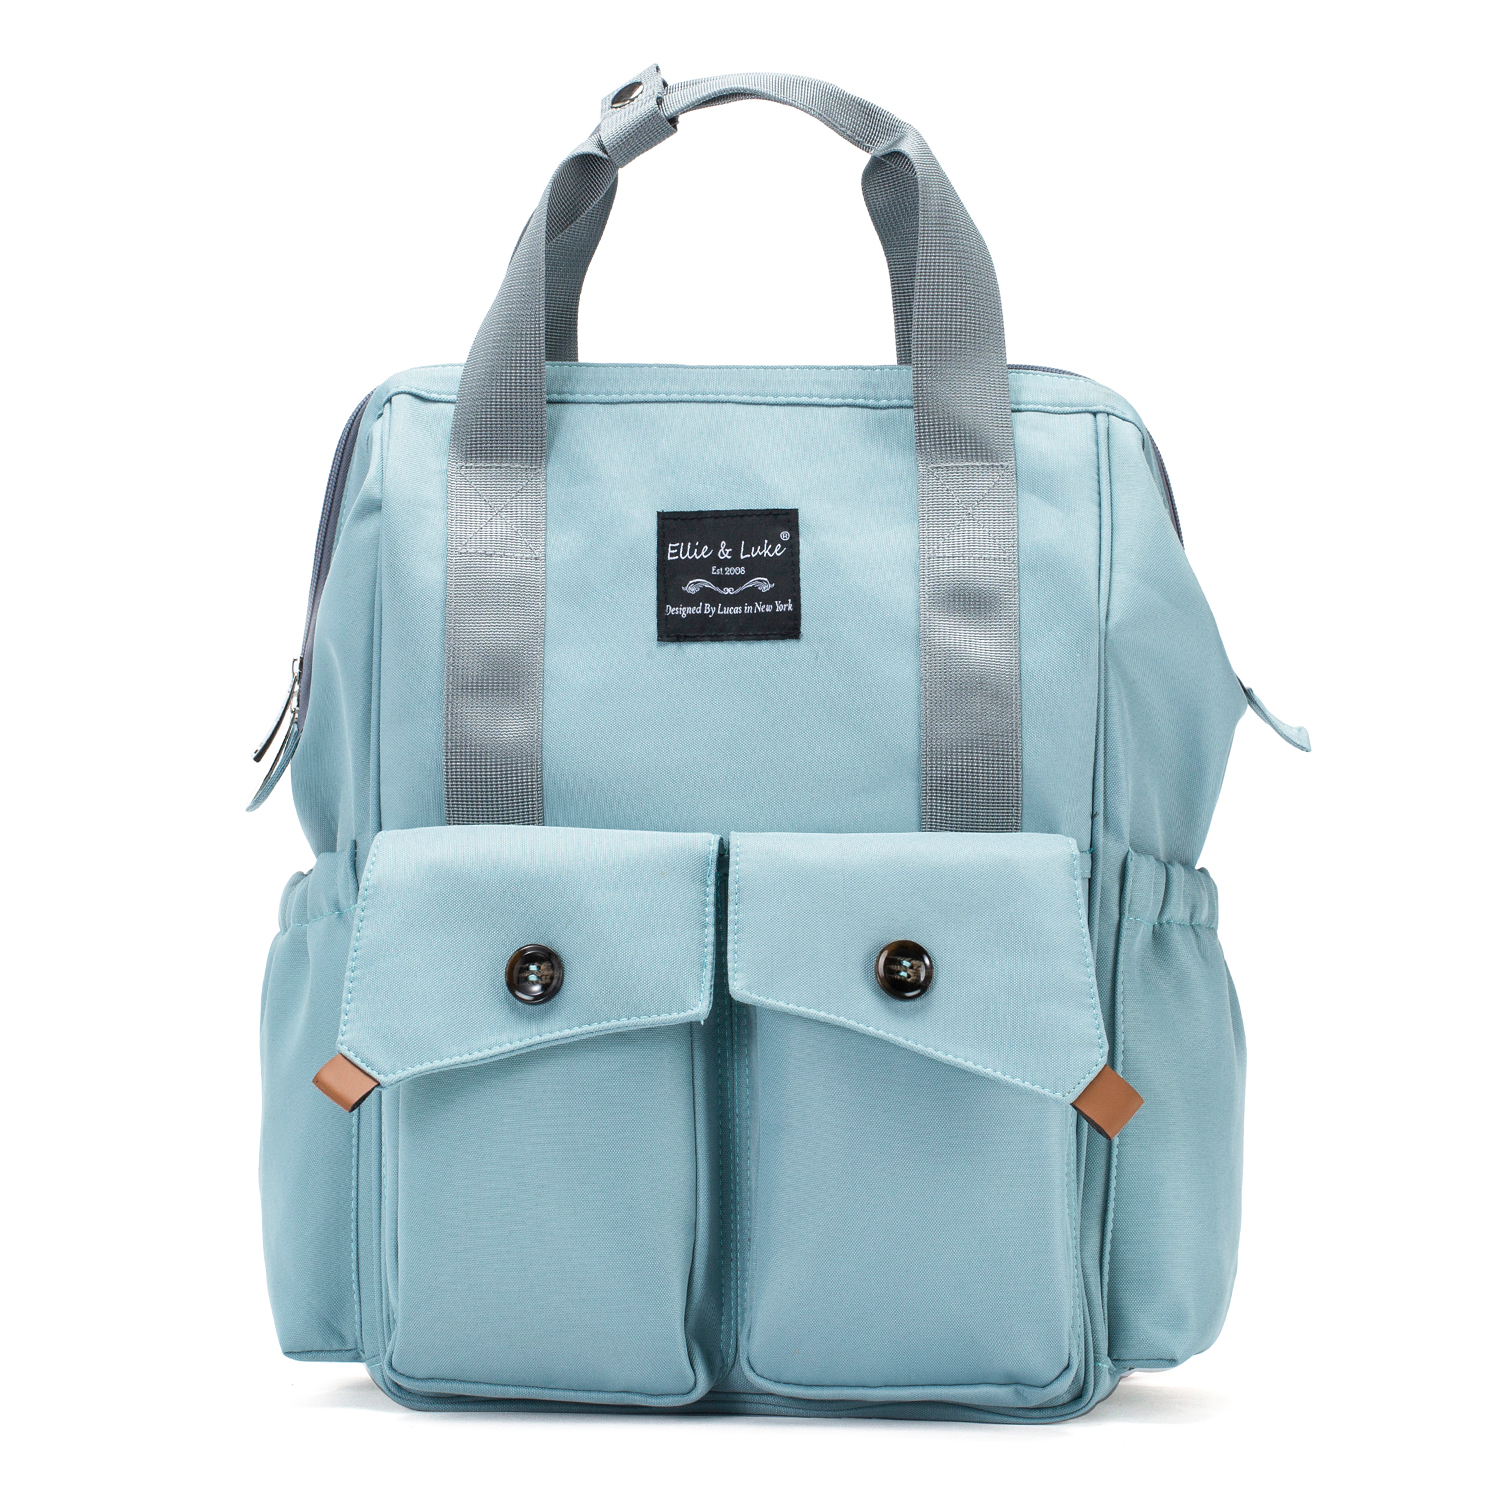 SoHo Collections, Designer Unisex Tote Diaper Bag Backpack with Stroller Straps, 3 Piece Set, Rockaway Beach (Aqua)